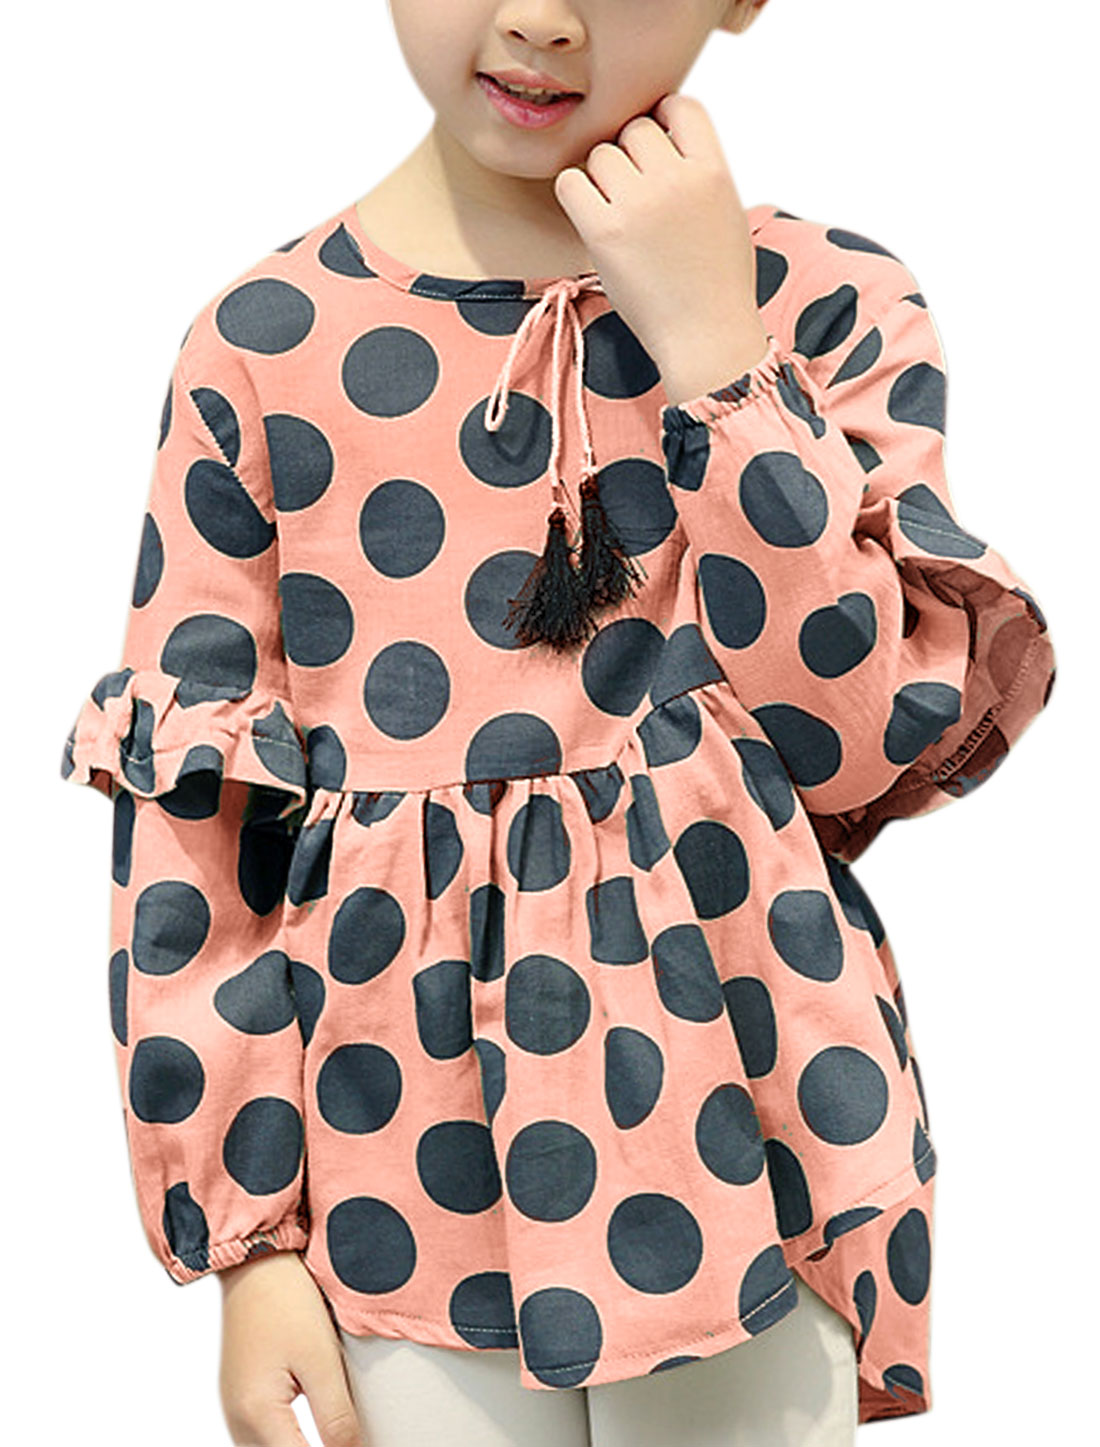 Girls Layered Sleeves Polka Dots Pleated Tunic Blouse Pink 12